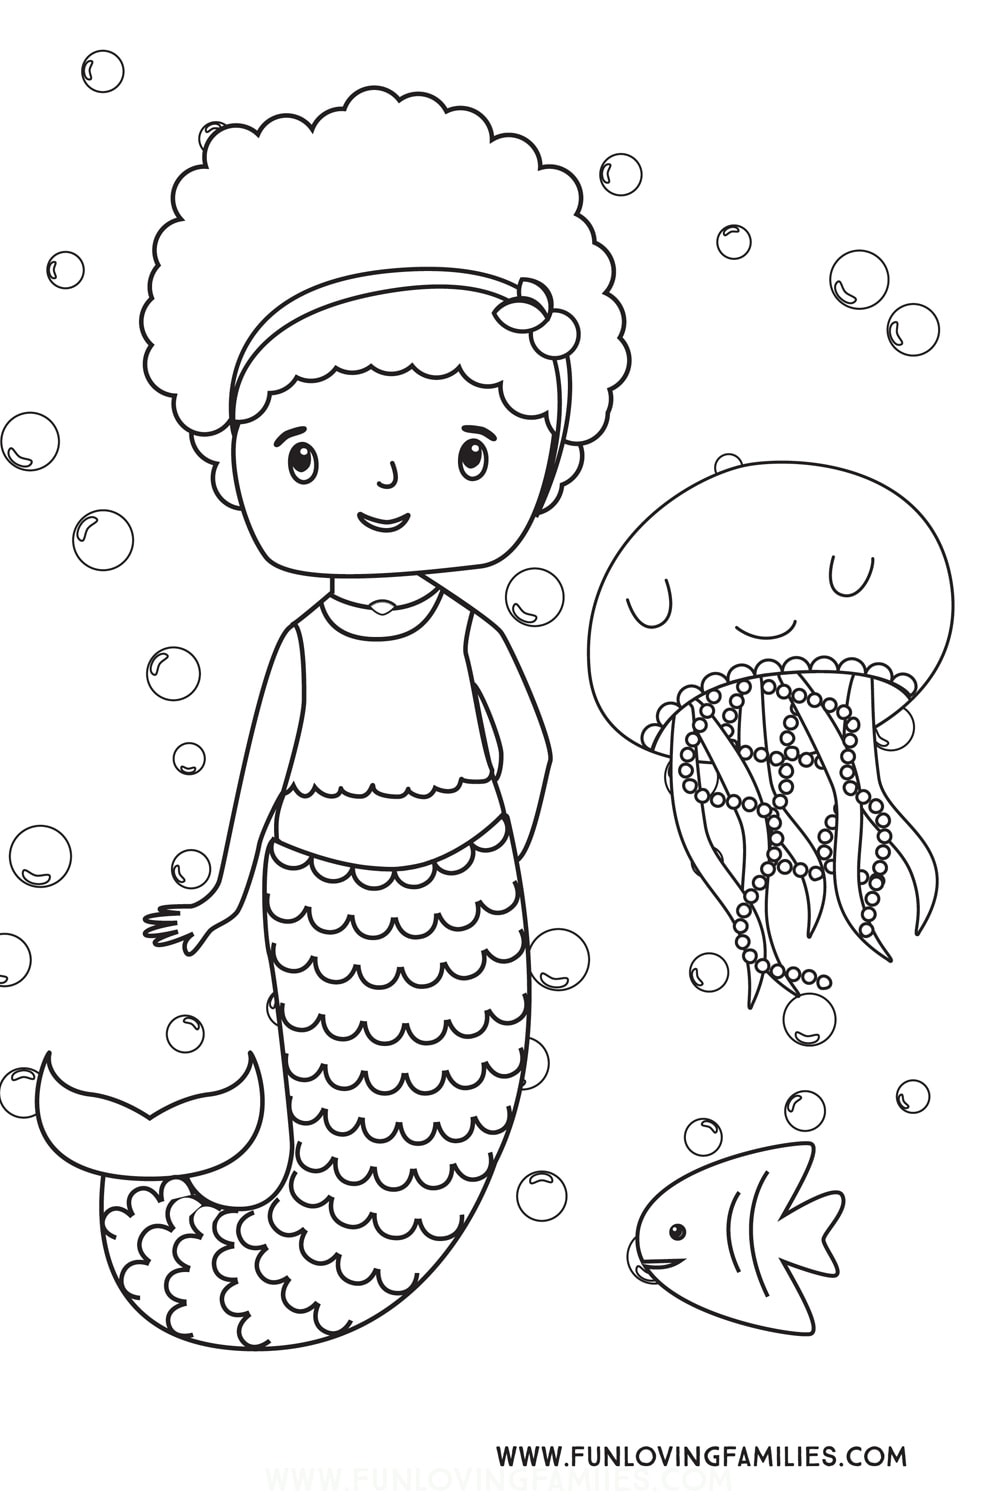 Mermaid Coloring Pages (Free Printables) - Fun Loving Families